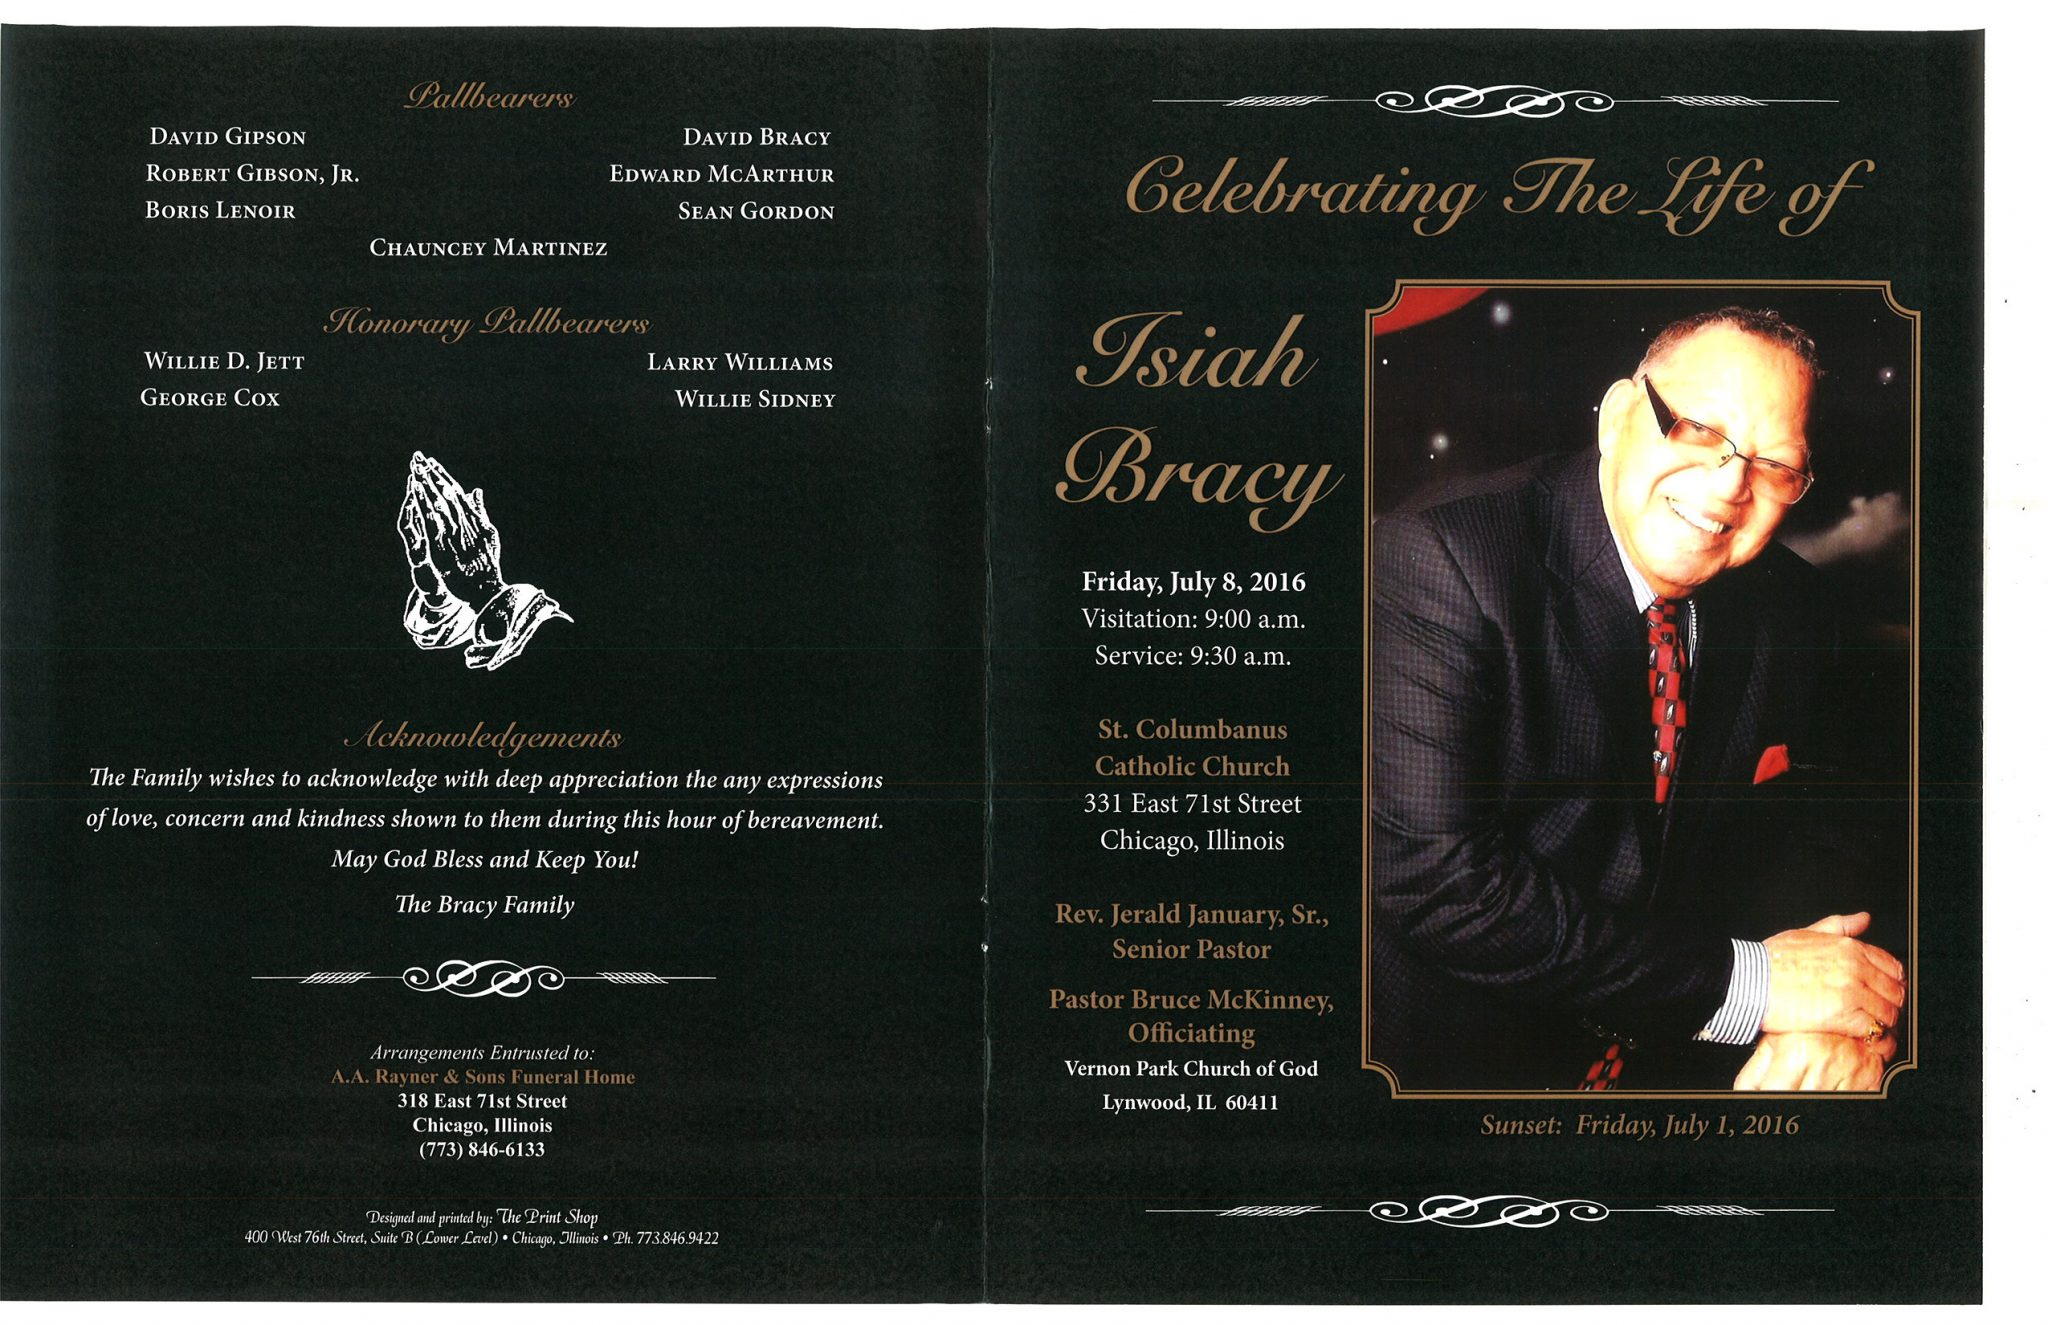 Isiah Bracy Obituary 2053_001 – AA Rayner and Sons Funeral Home